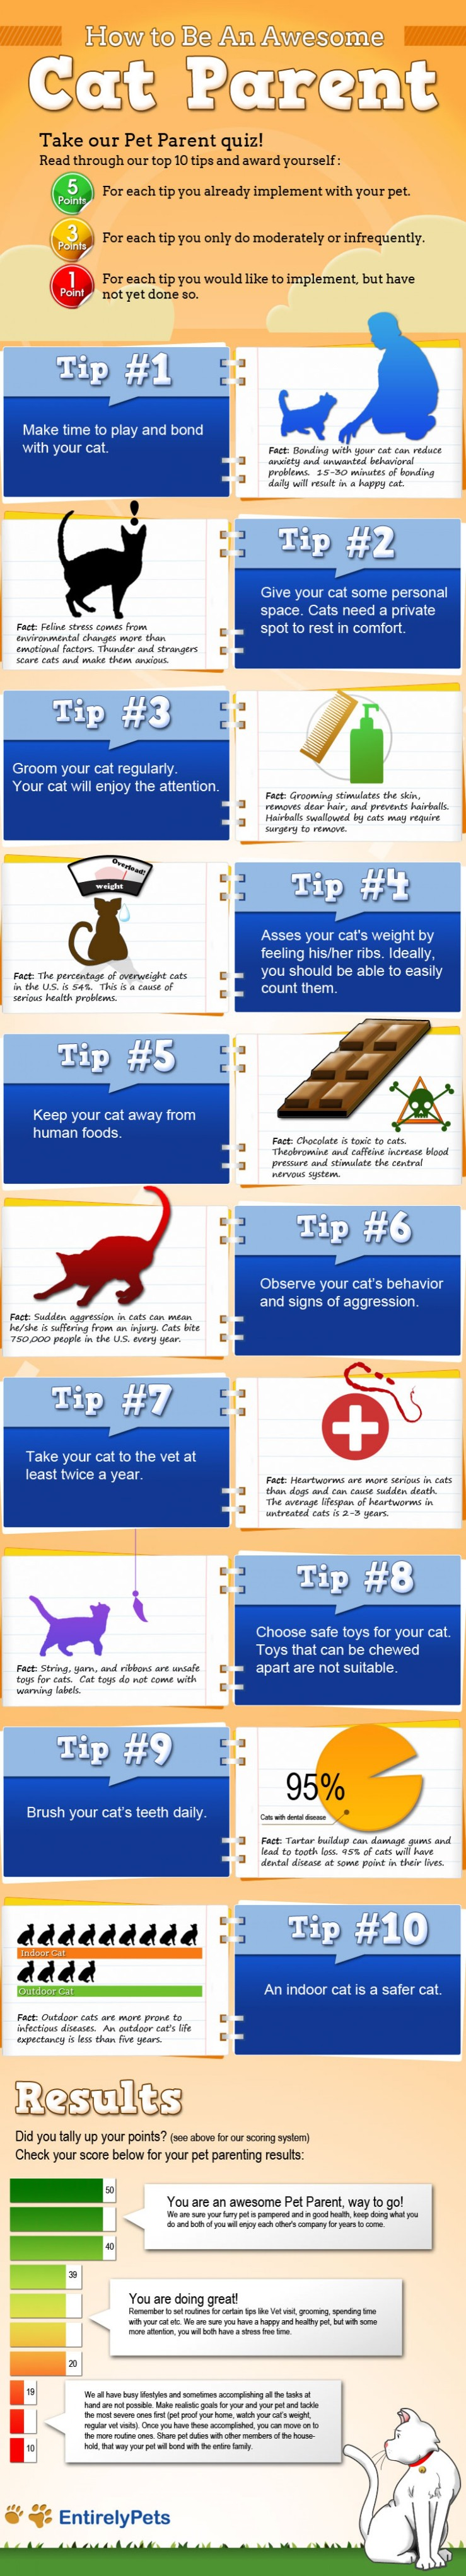 how-to-be-an-awesome-cat-parent_52e06be561e55_w1500